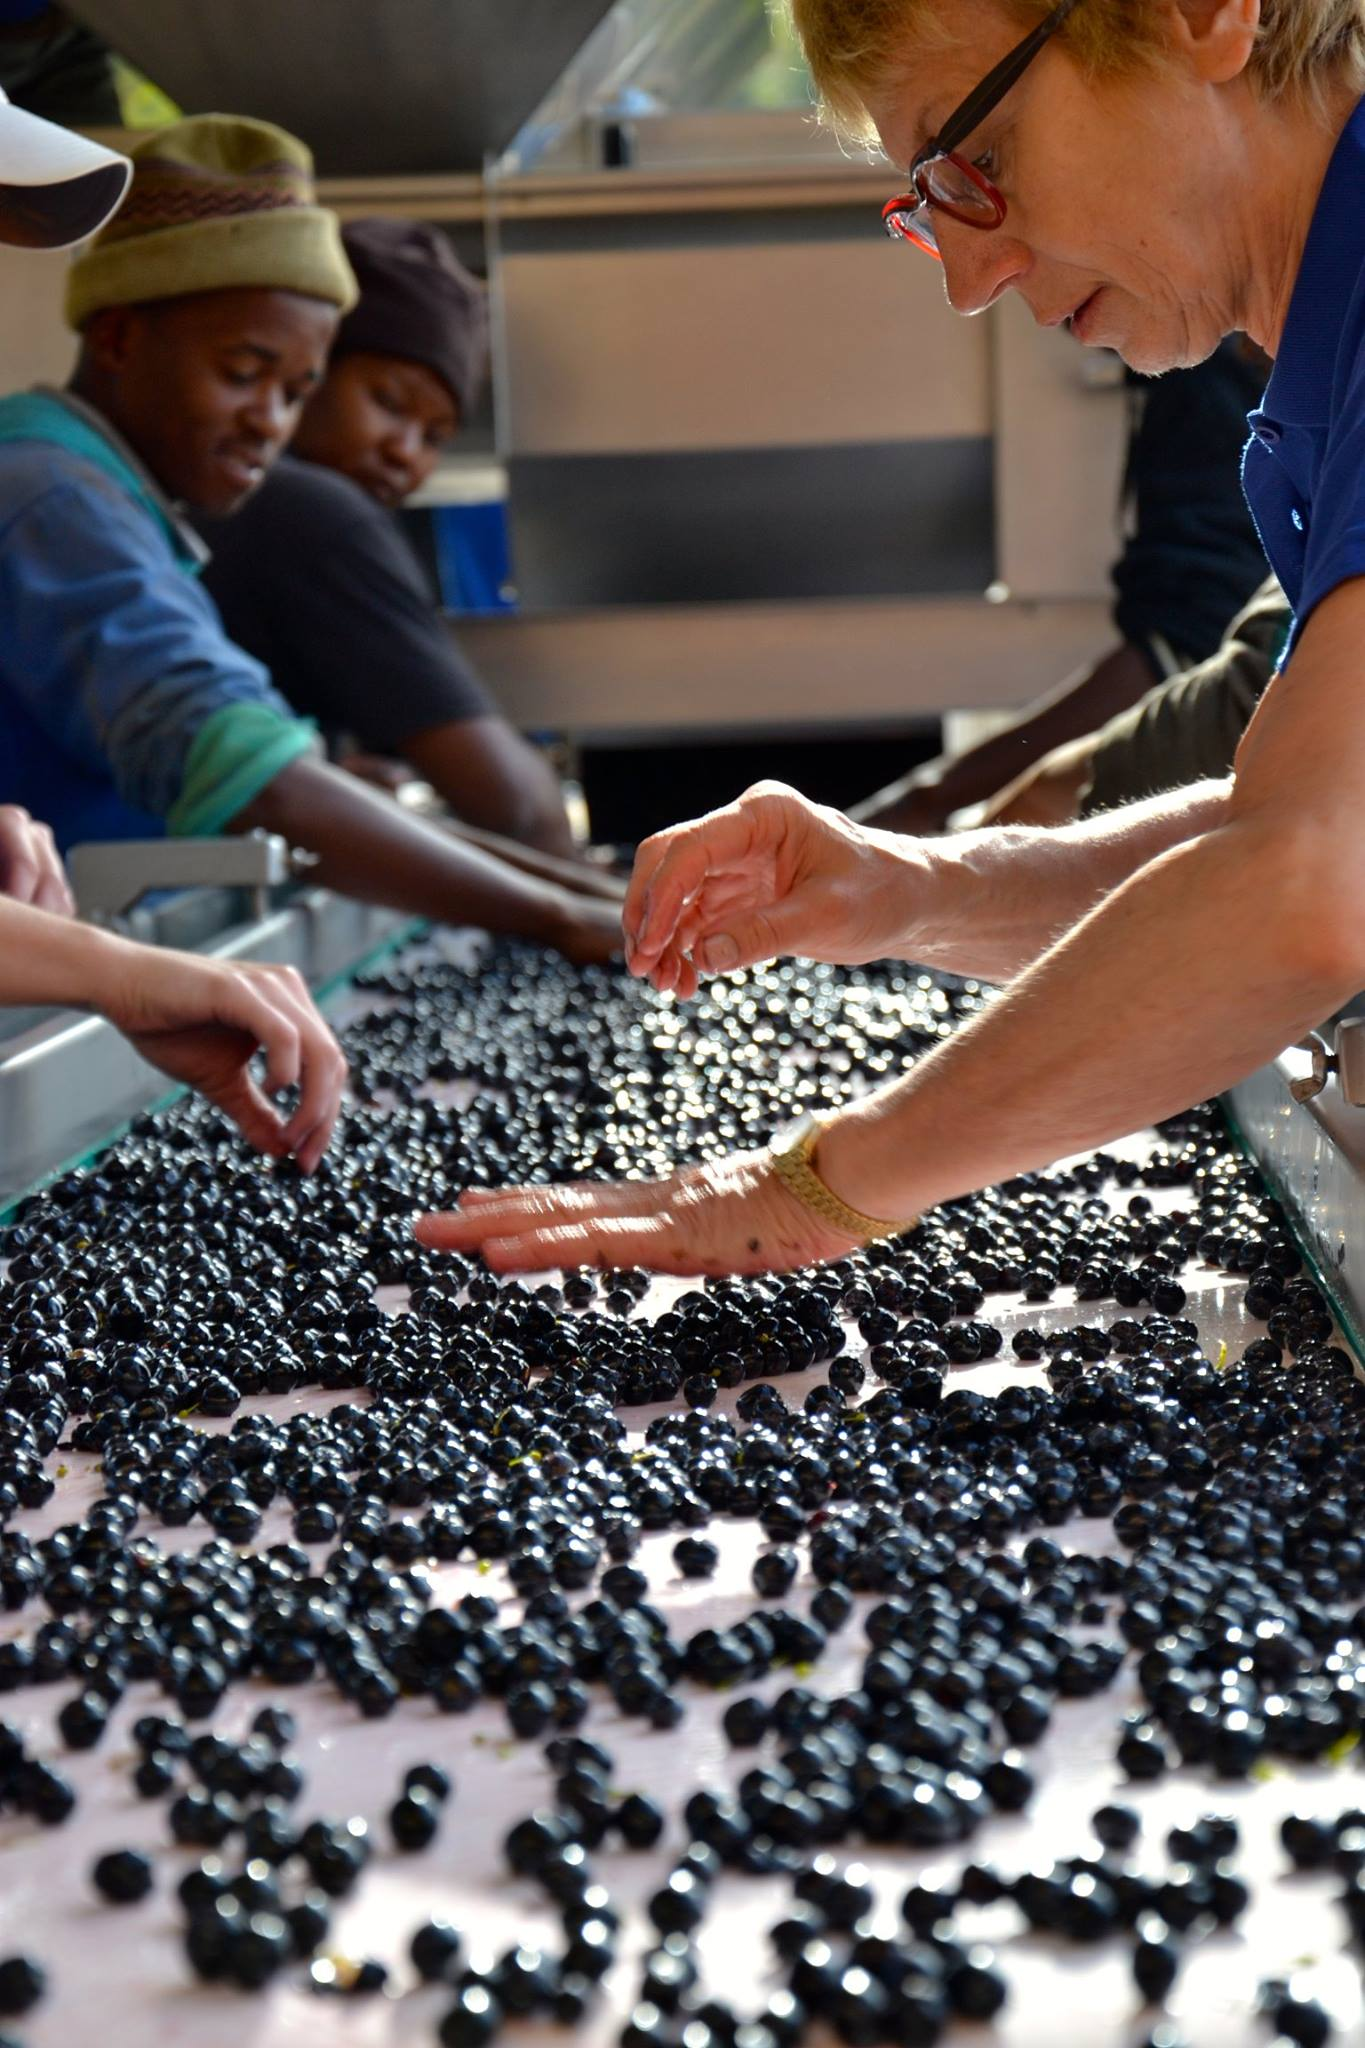 Sorting grapes 3